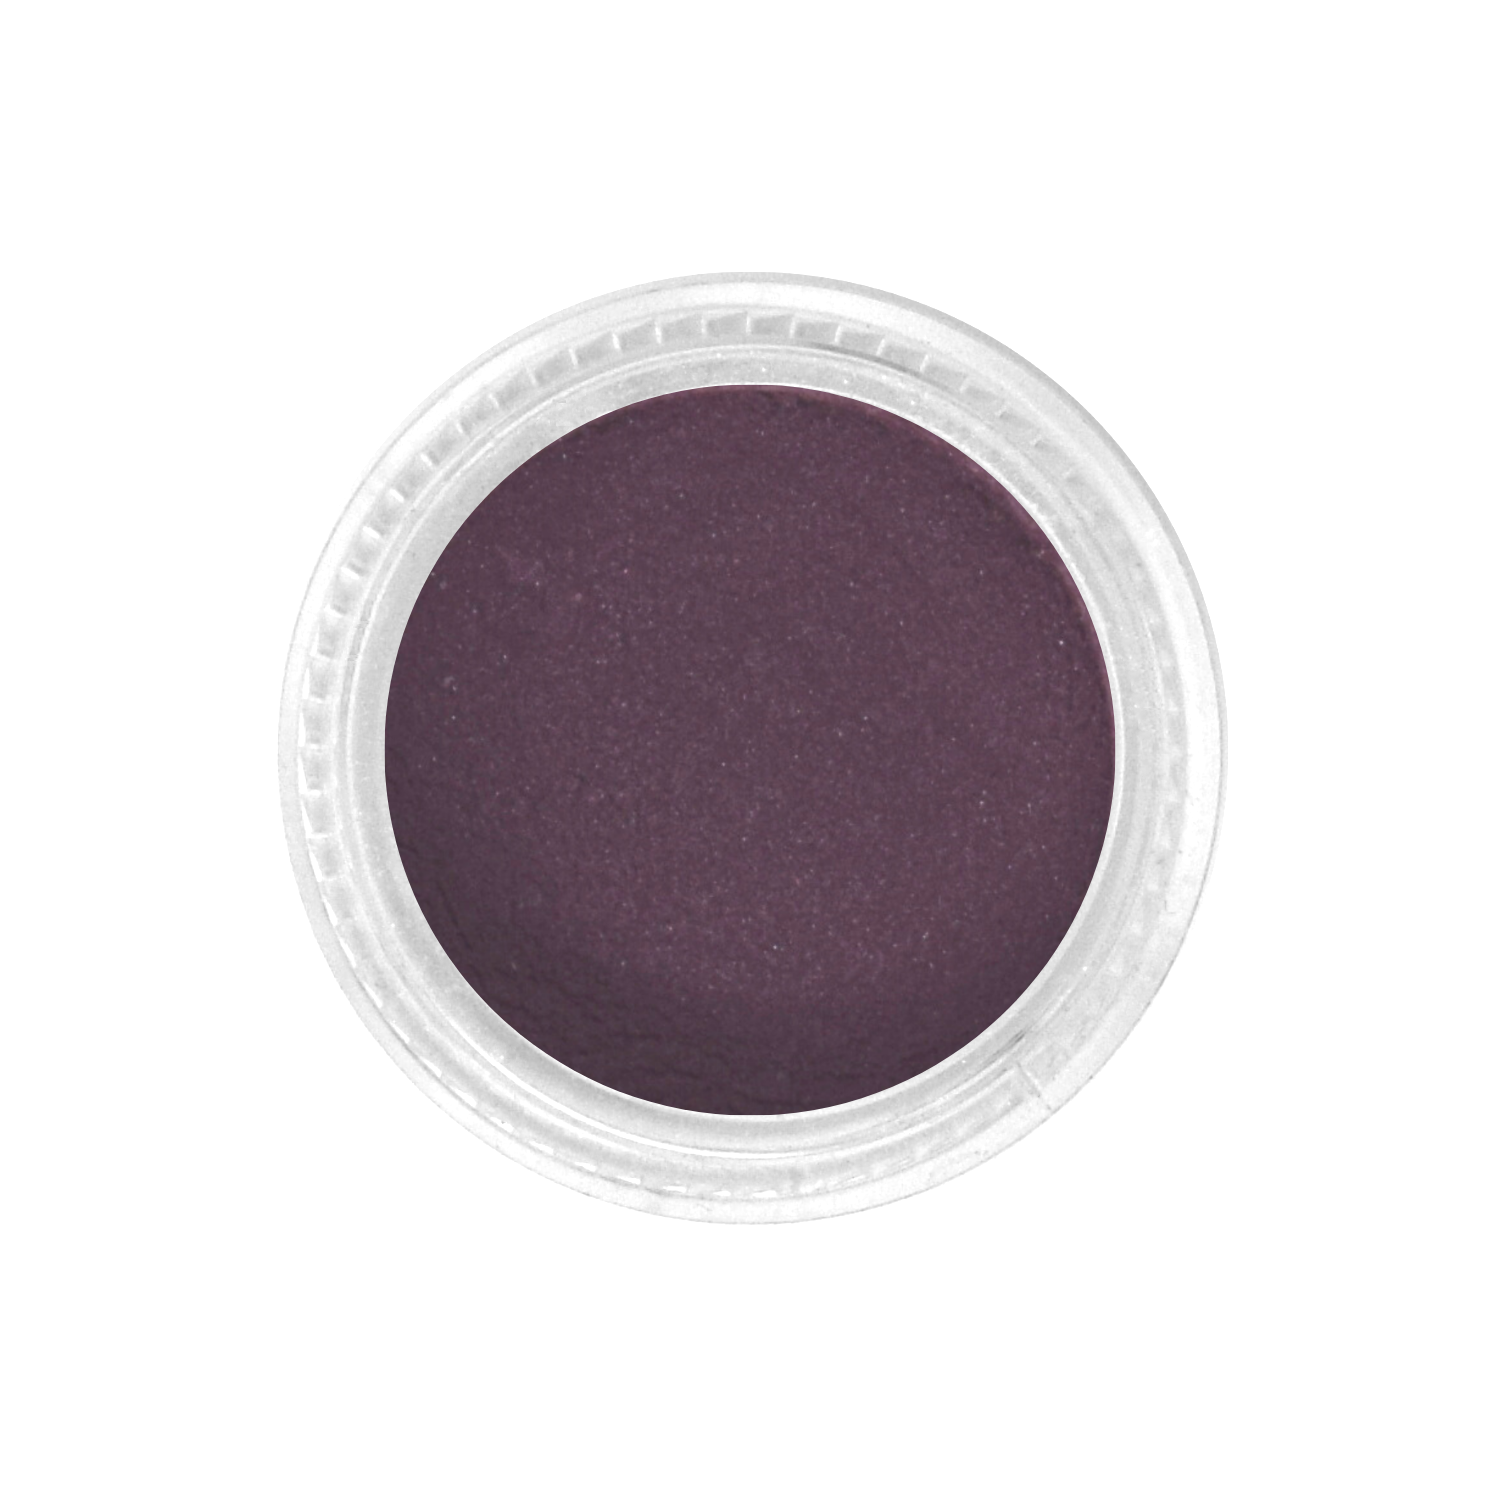 Loose Mineral Eye Shadow in Vintage Iris